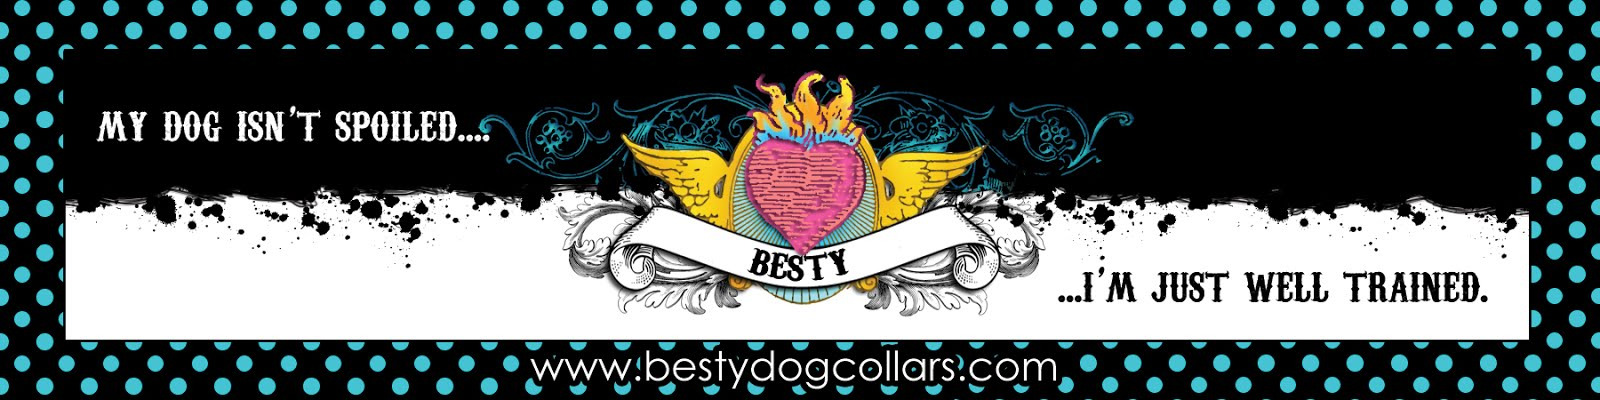 Besty Dog Collars